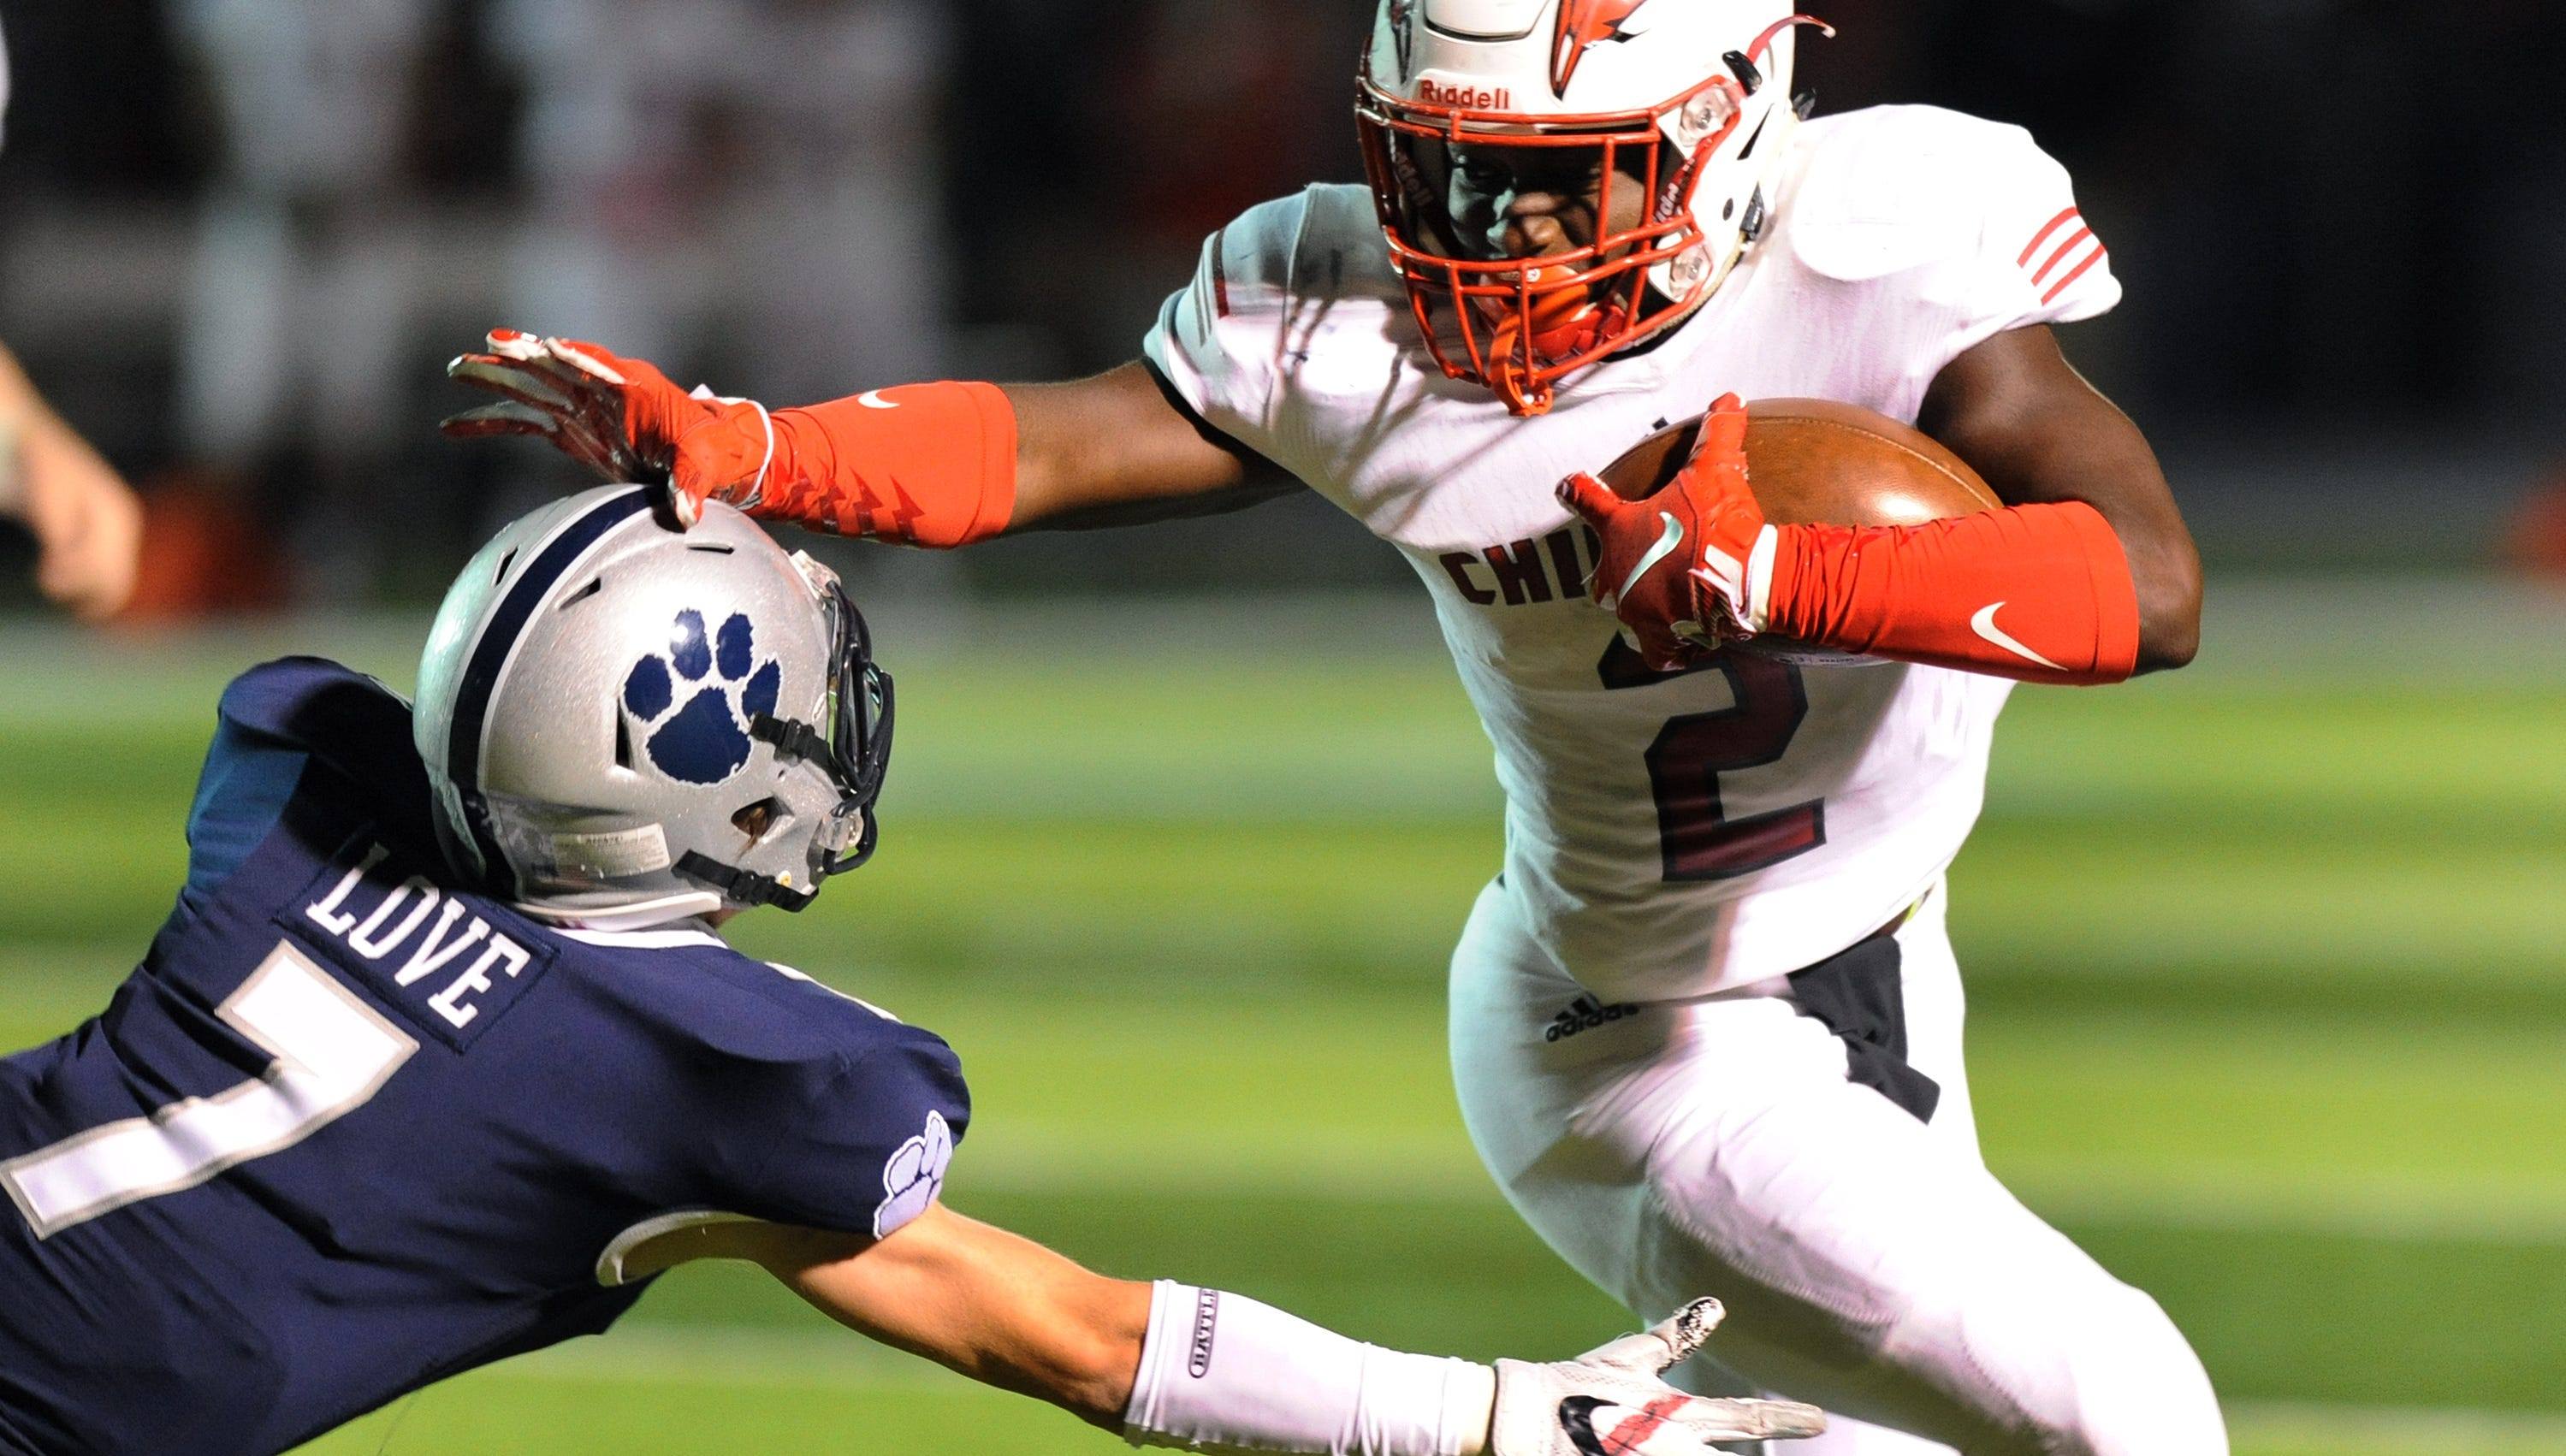 Chippewa Valley running back Ja'Von Kimpson (2), right, rushes past Macomb Dakota defensive back Matt Love (7) for a touchdown in the fourth quarter, Friday, Sept. 21, 2018, at Dakota HS in Macomb, Mich.  Chippewa Valley defeated Dakota, 24-17.